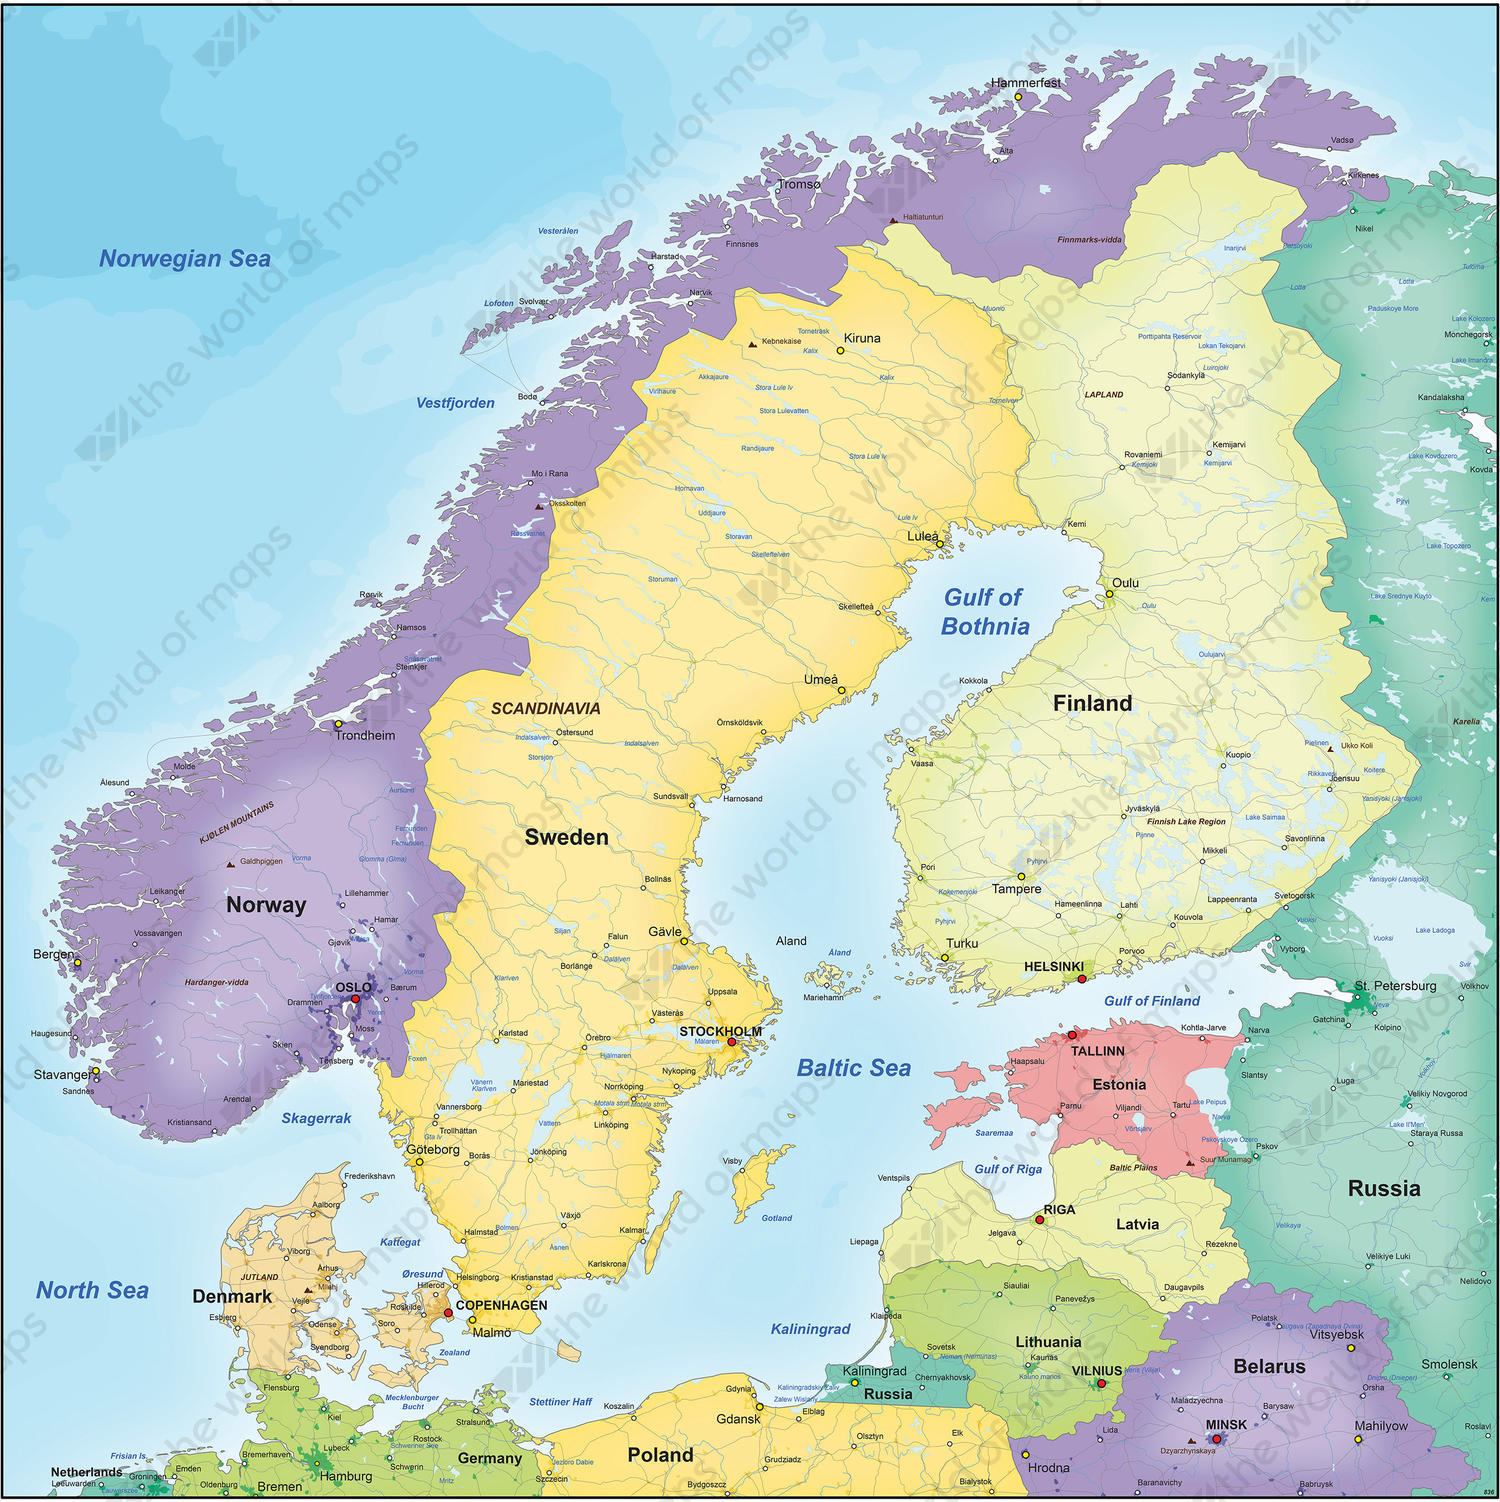 Digital Political Map Scandinavia 836 | The World of Maps.com